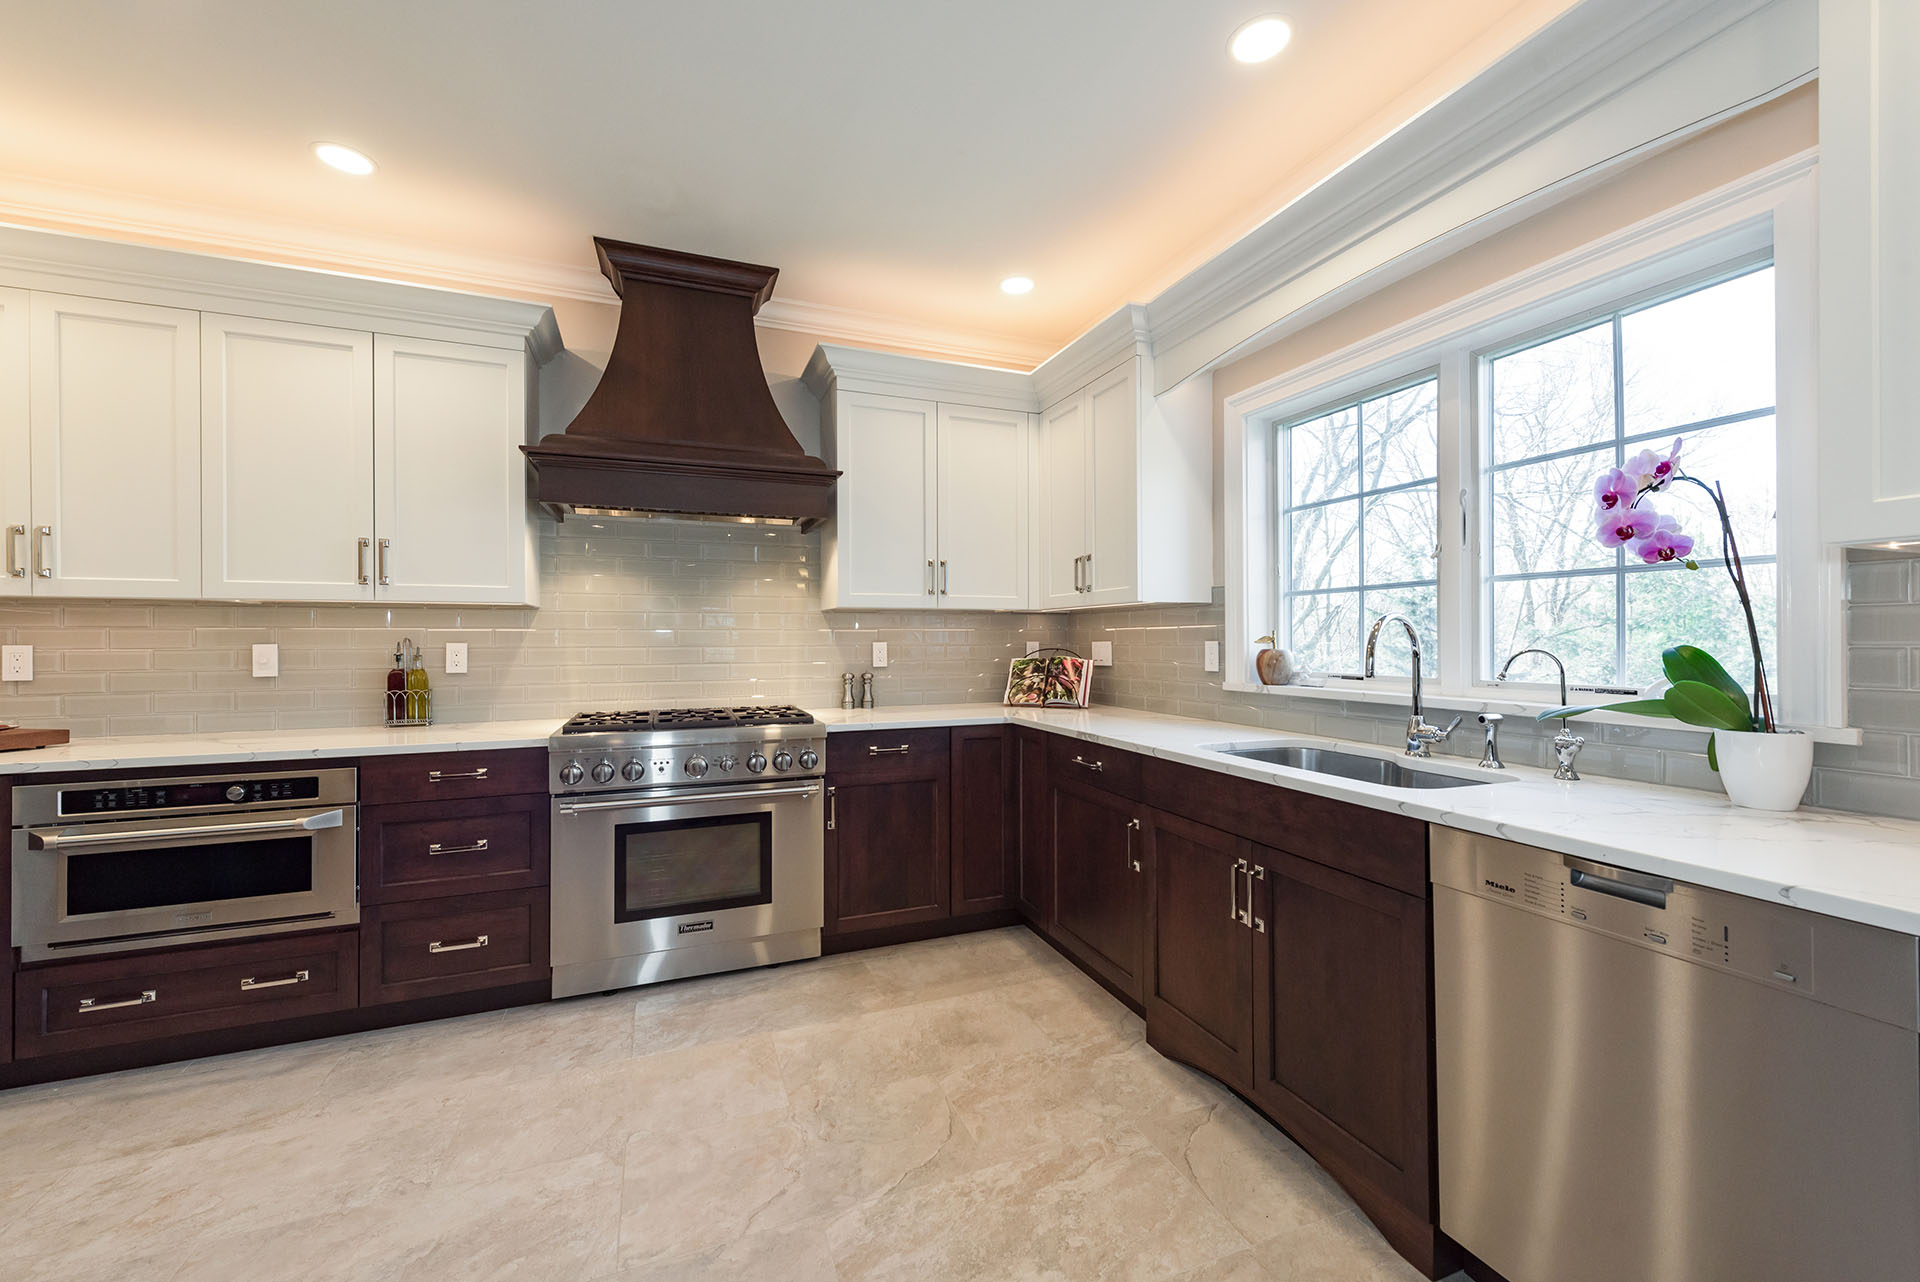 classic kitchen designed by Joan Bigg kitchen choreography kitchen design rockland county ny